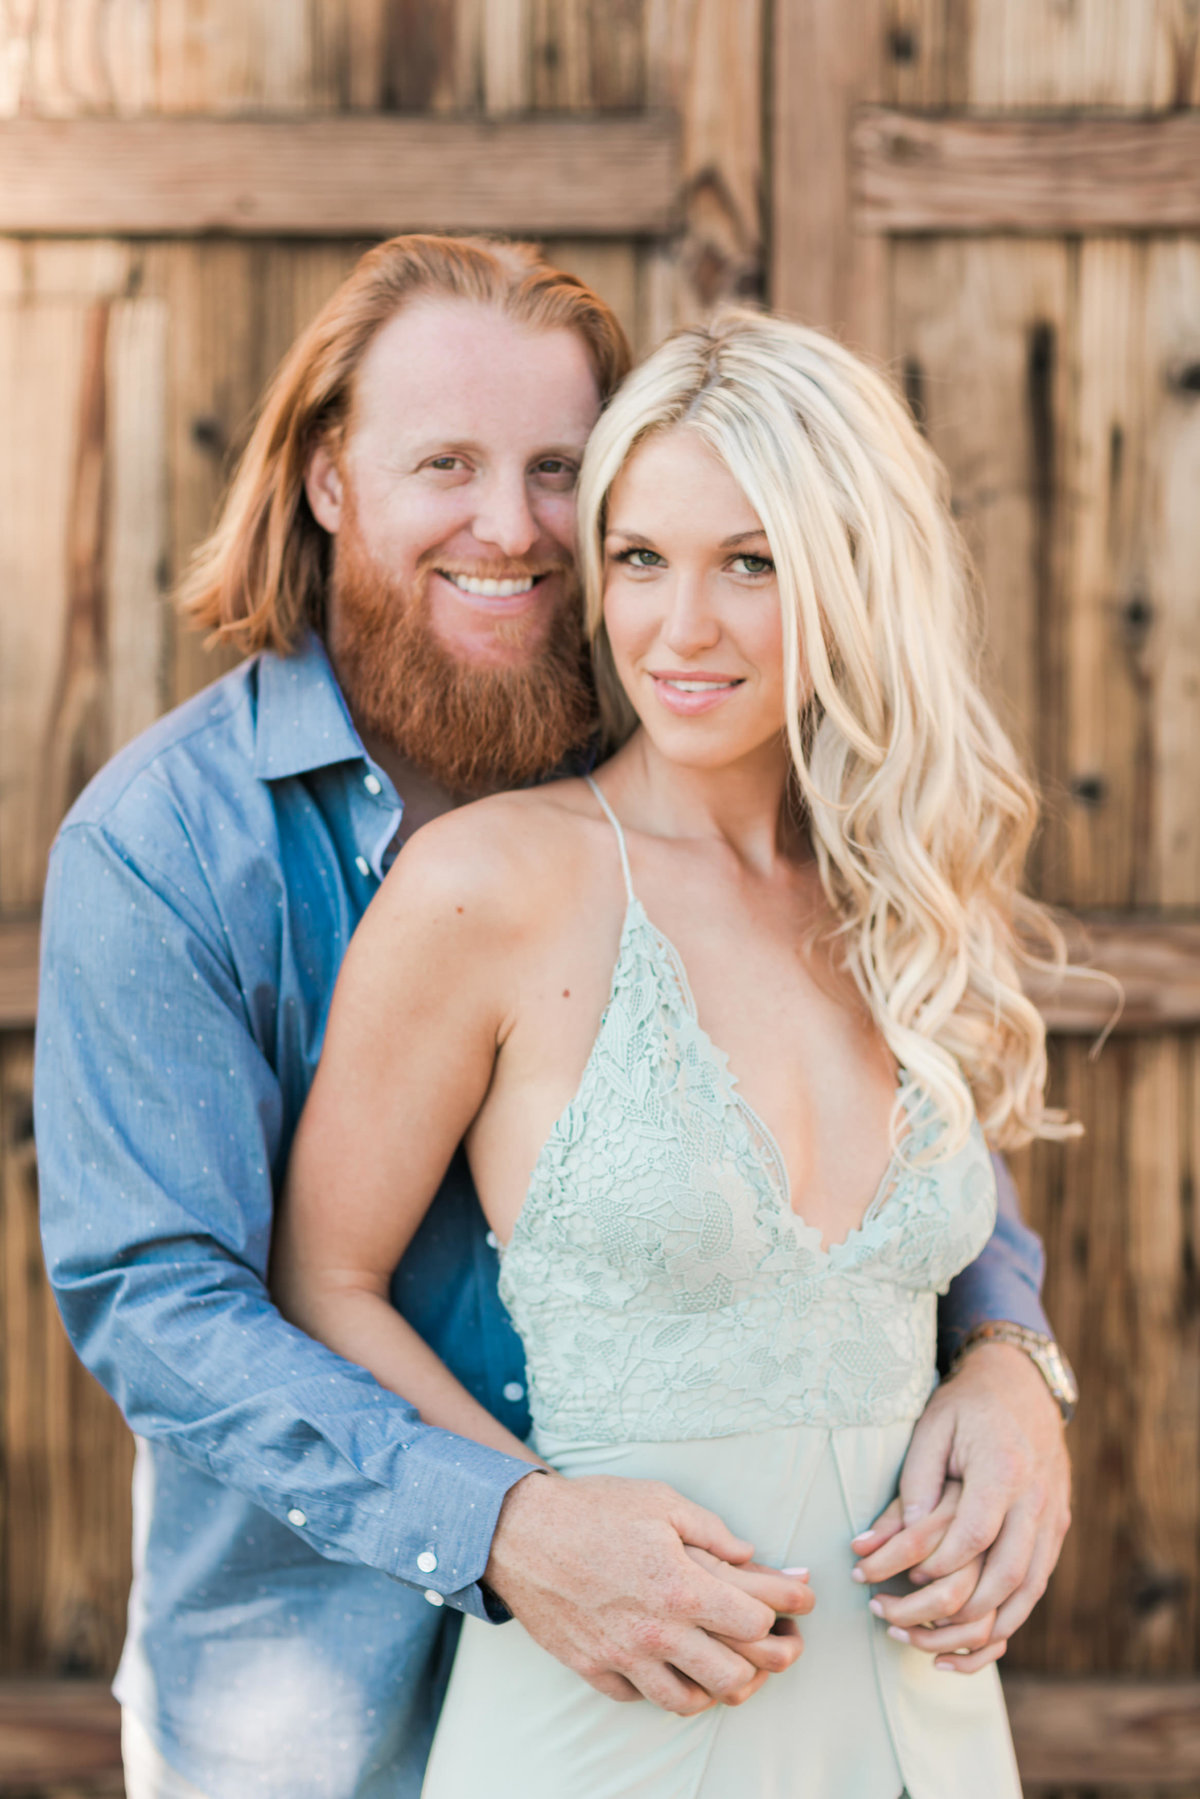 Kourtney Justin Turner Malibu Engagement Session_Valorie Darling Photography-7156